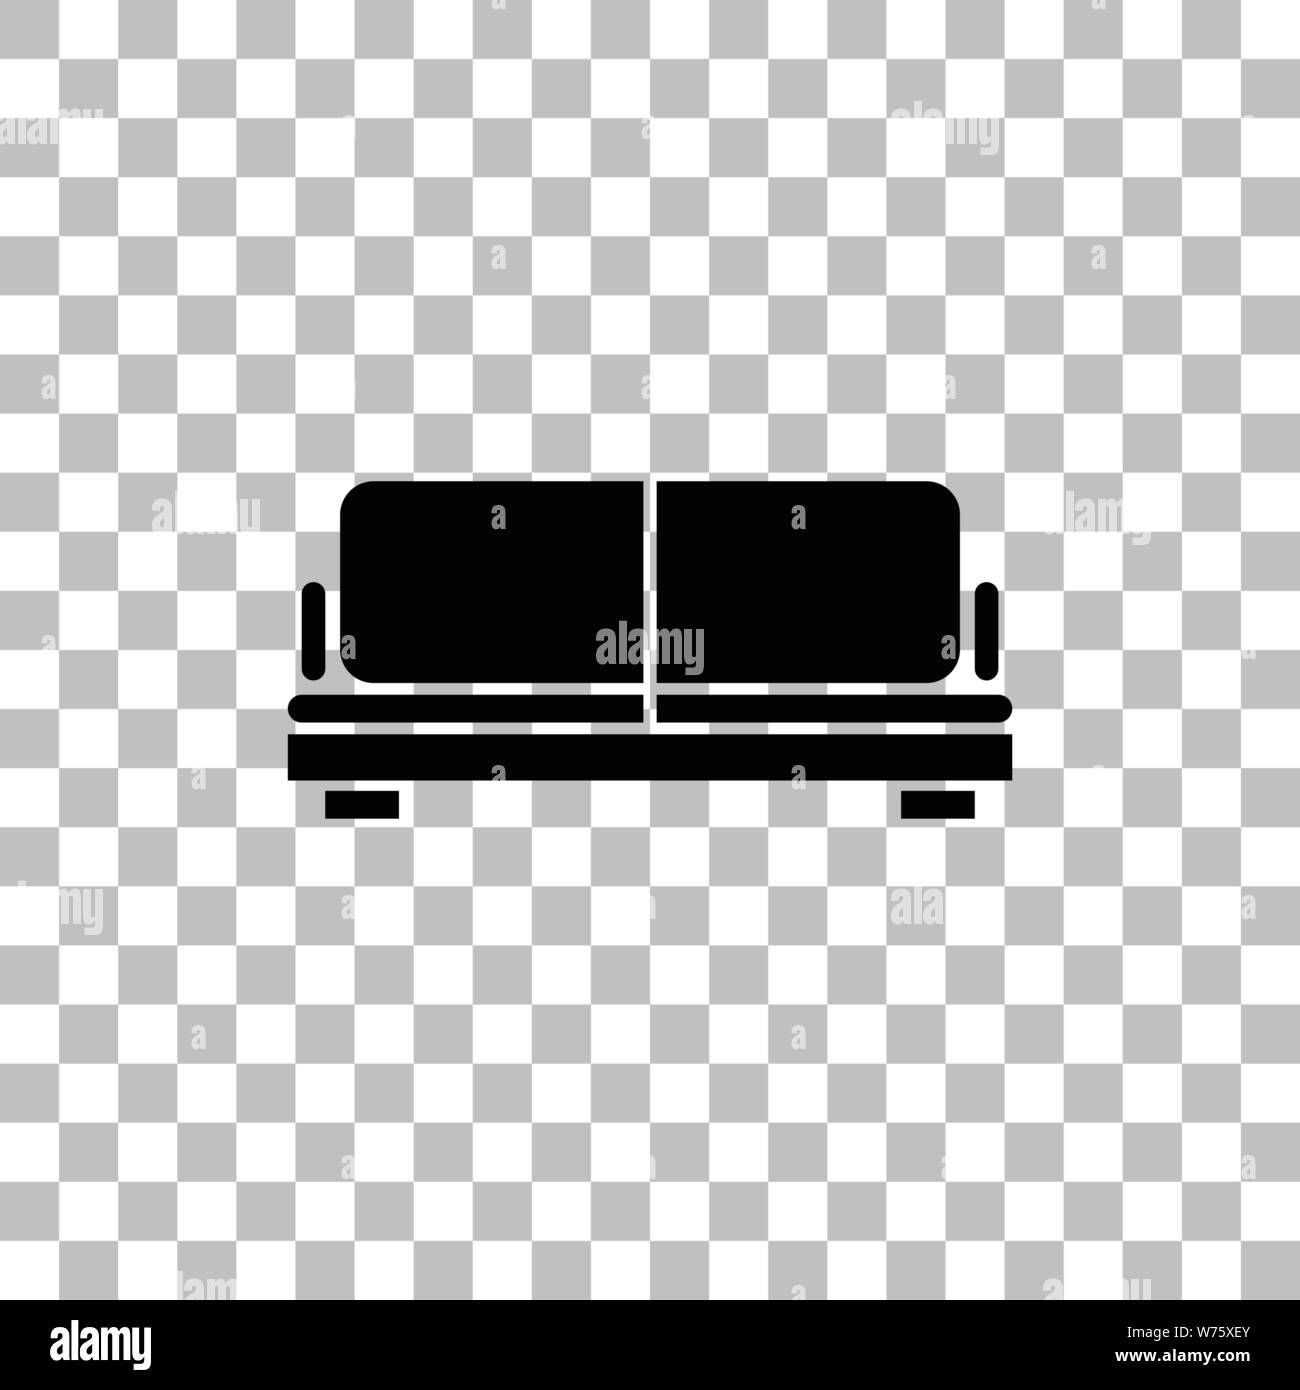 Awesome Sofa Black Flat Icon On A Transparent Background Pictogram Theyellowbook Wood Chair Design Ideas Theyellowbookinfo